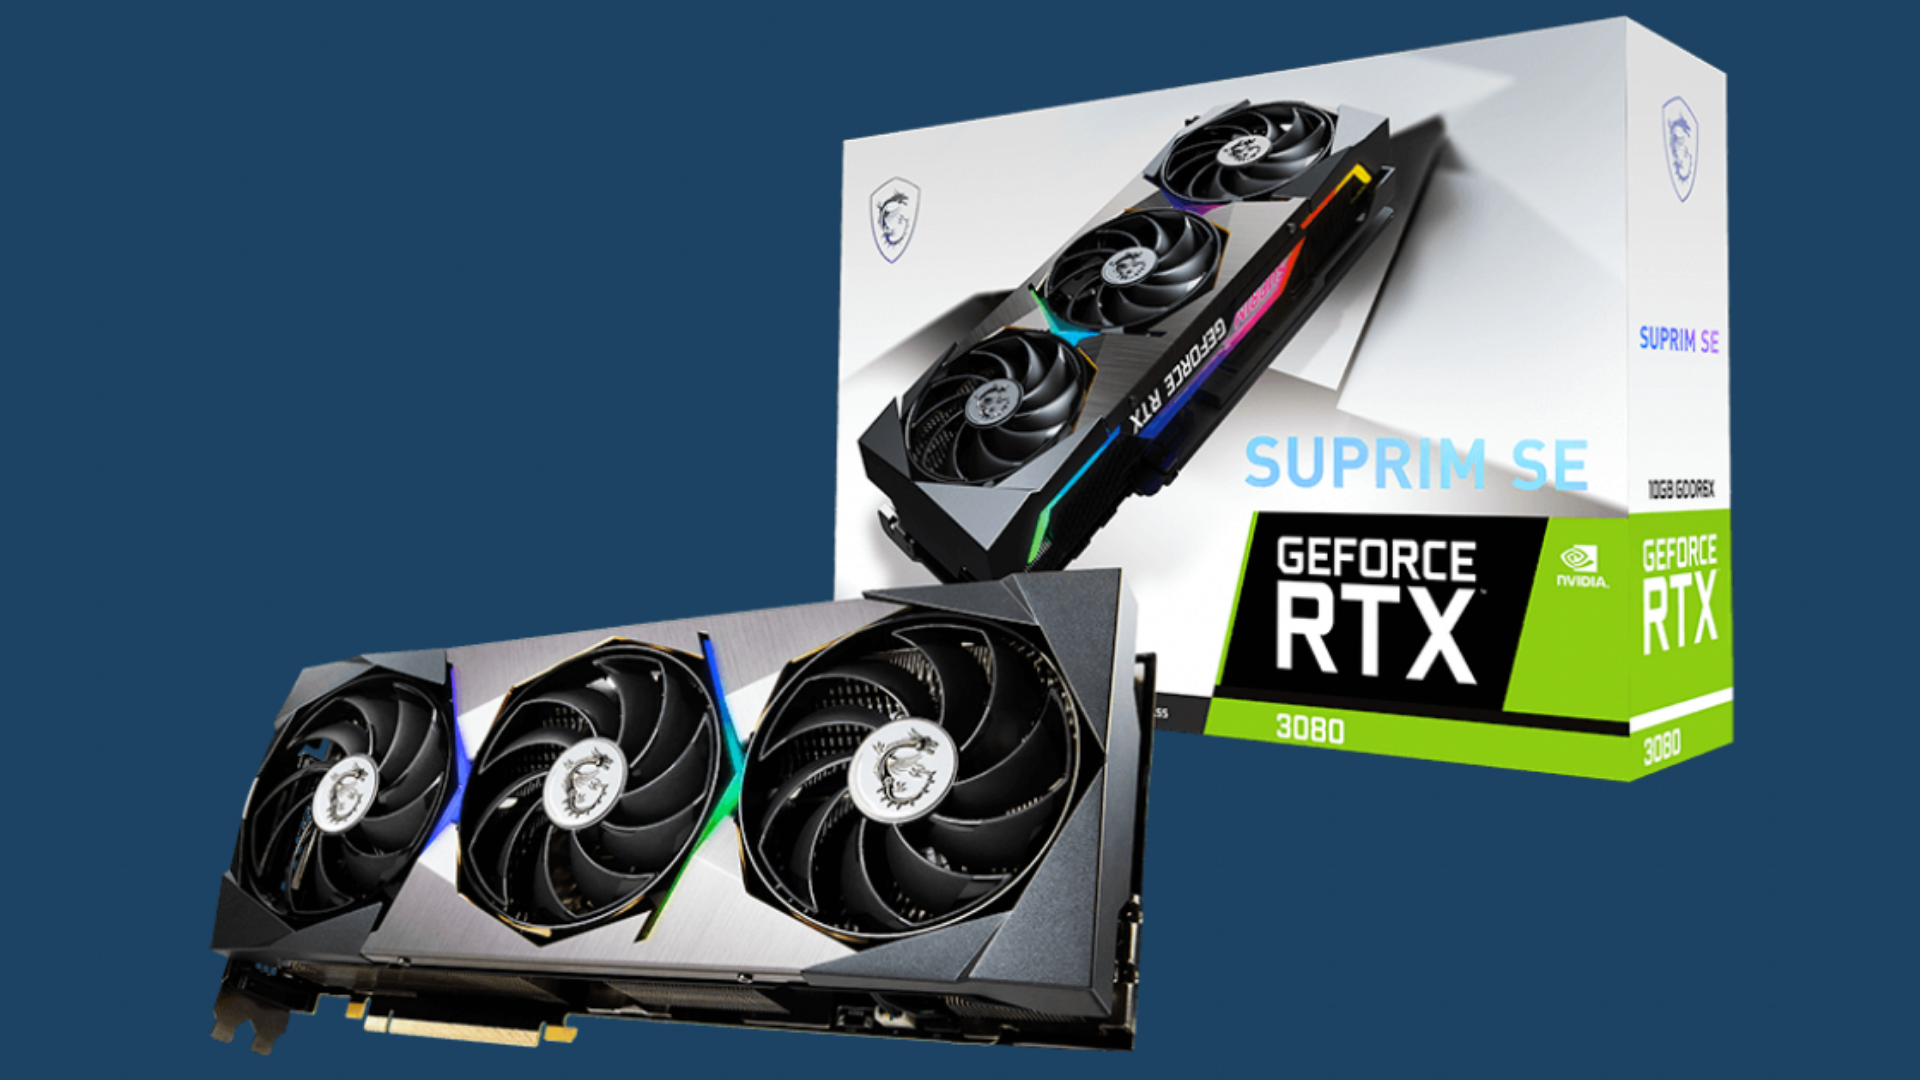 msi-to-reportedly-hike-graphics-card-prices-amid-ongoing-gpu-shortage